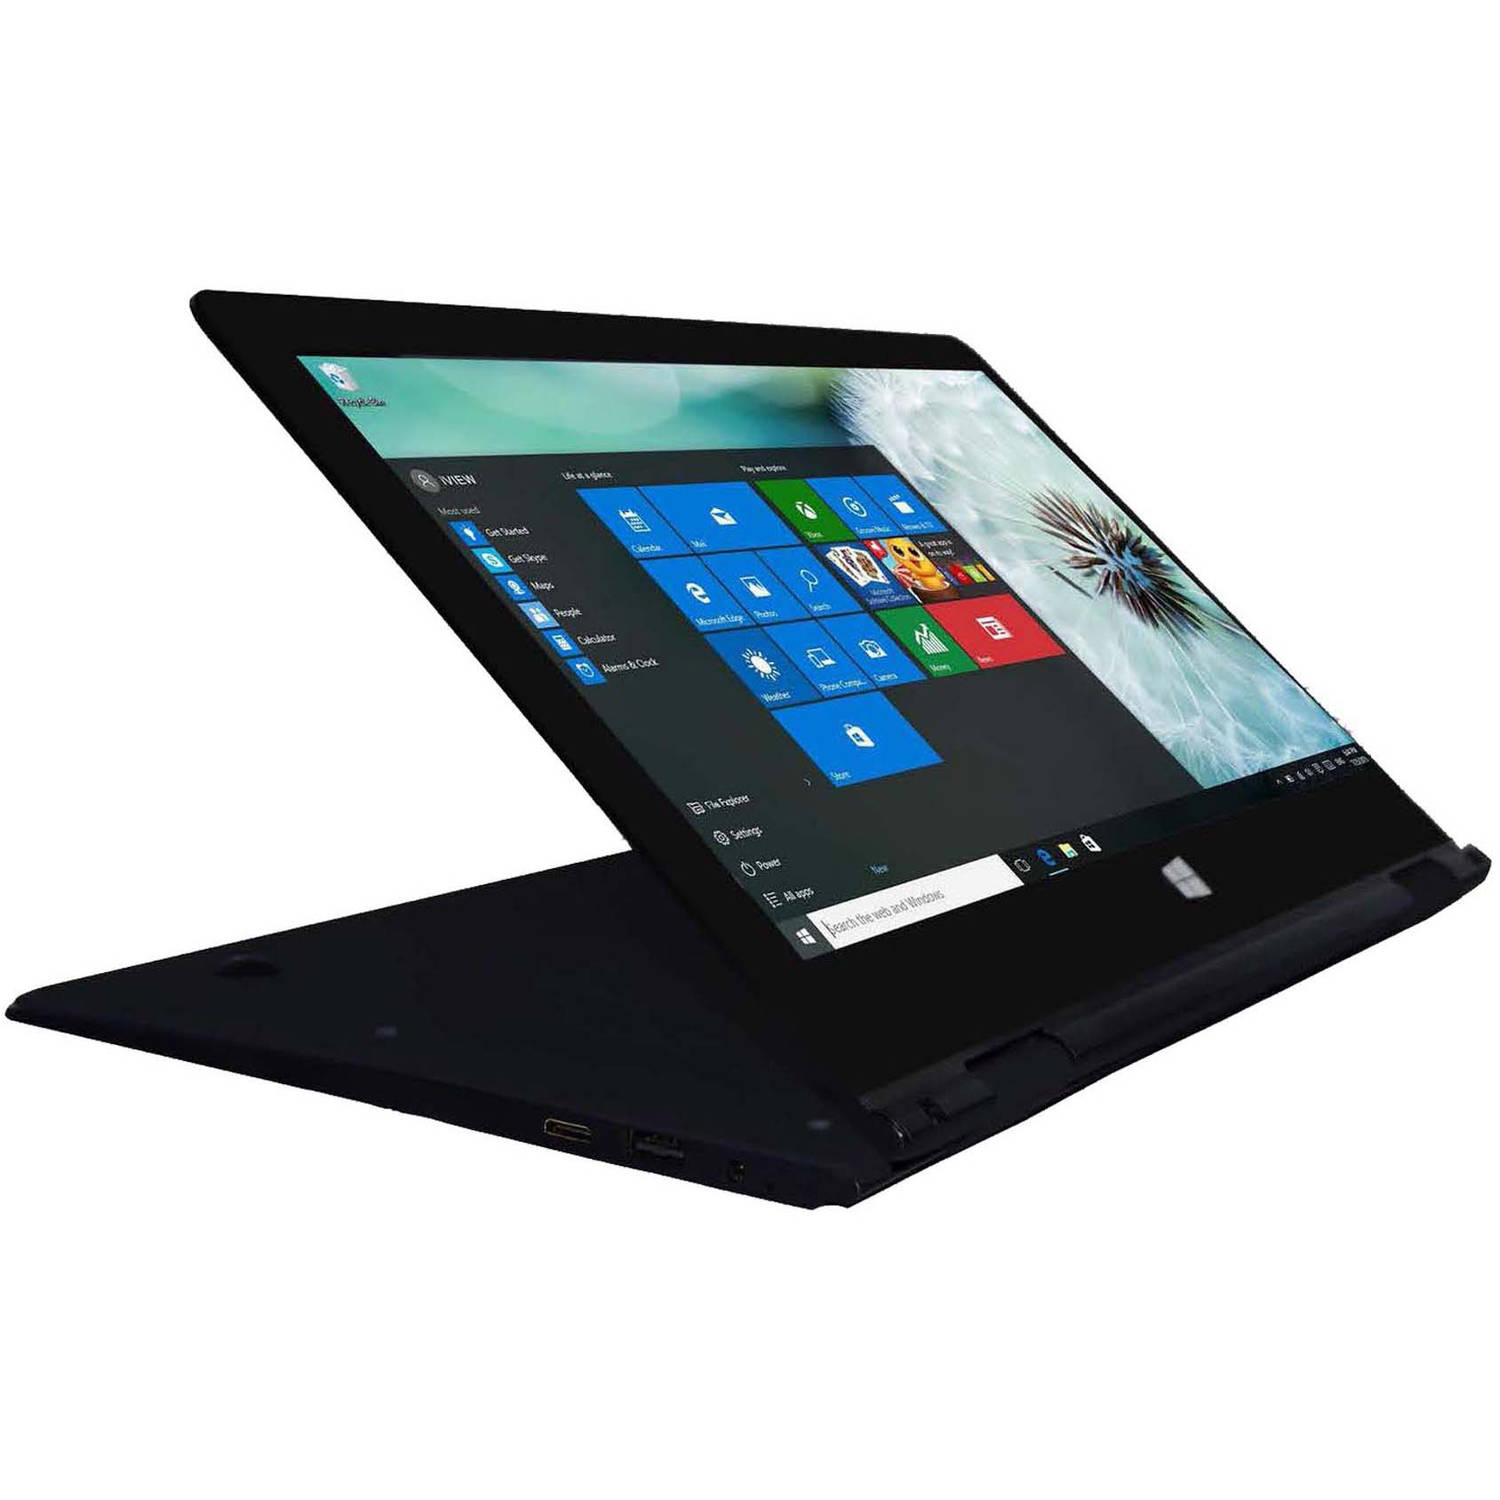 "ULTIMA 13.3"" Touch Screen 2-in-1 Convertible laptop PC with Intel Atom Cherry Trail Z830D Quad-Core processor, 2GB Memory,32GB SSD and Windows 10"